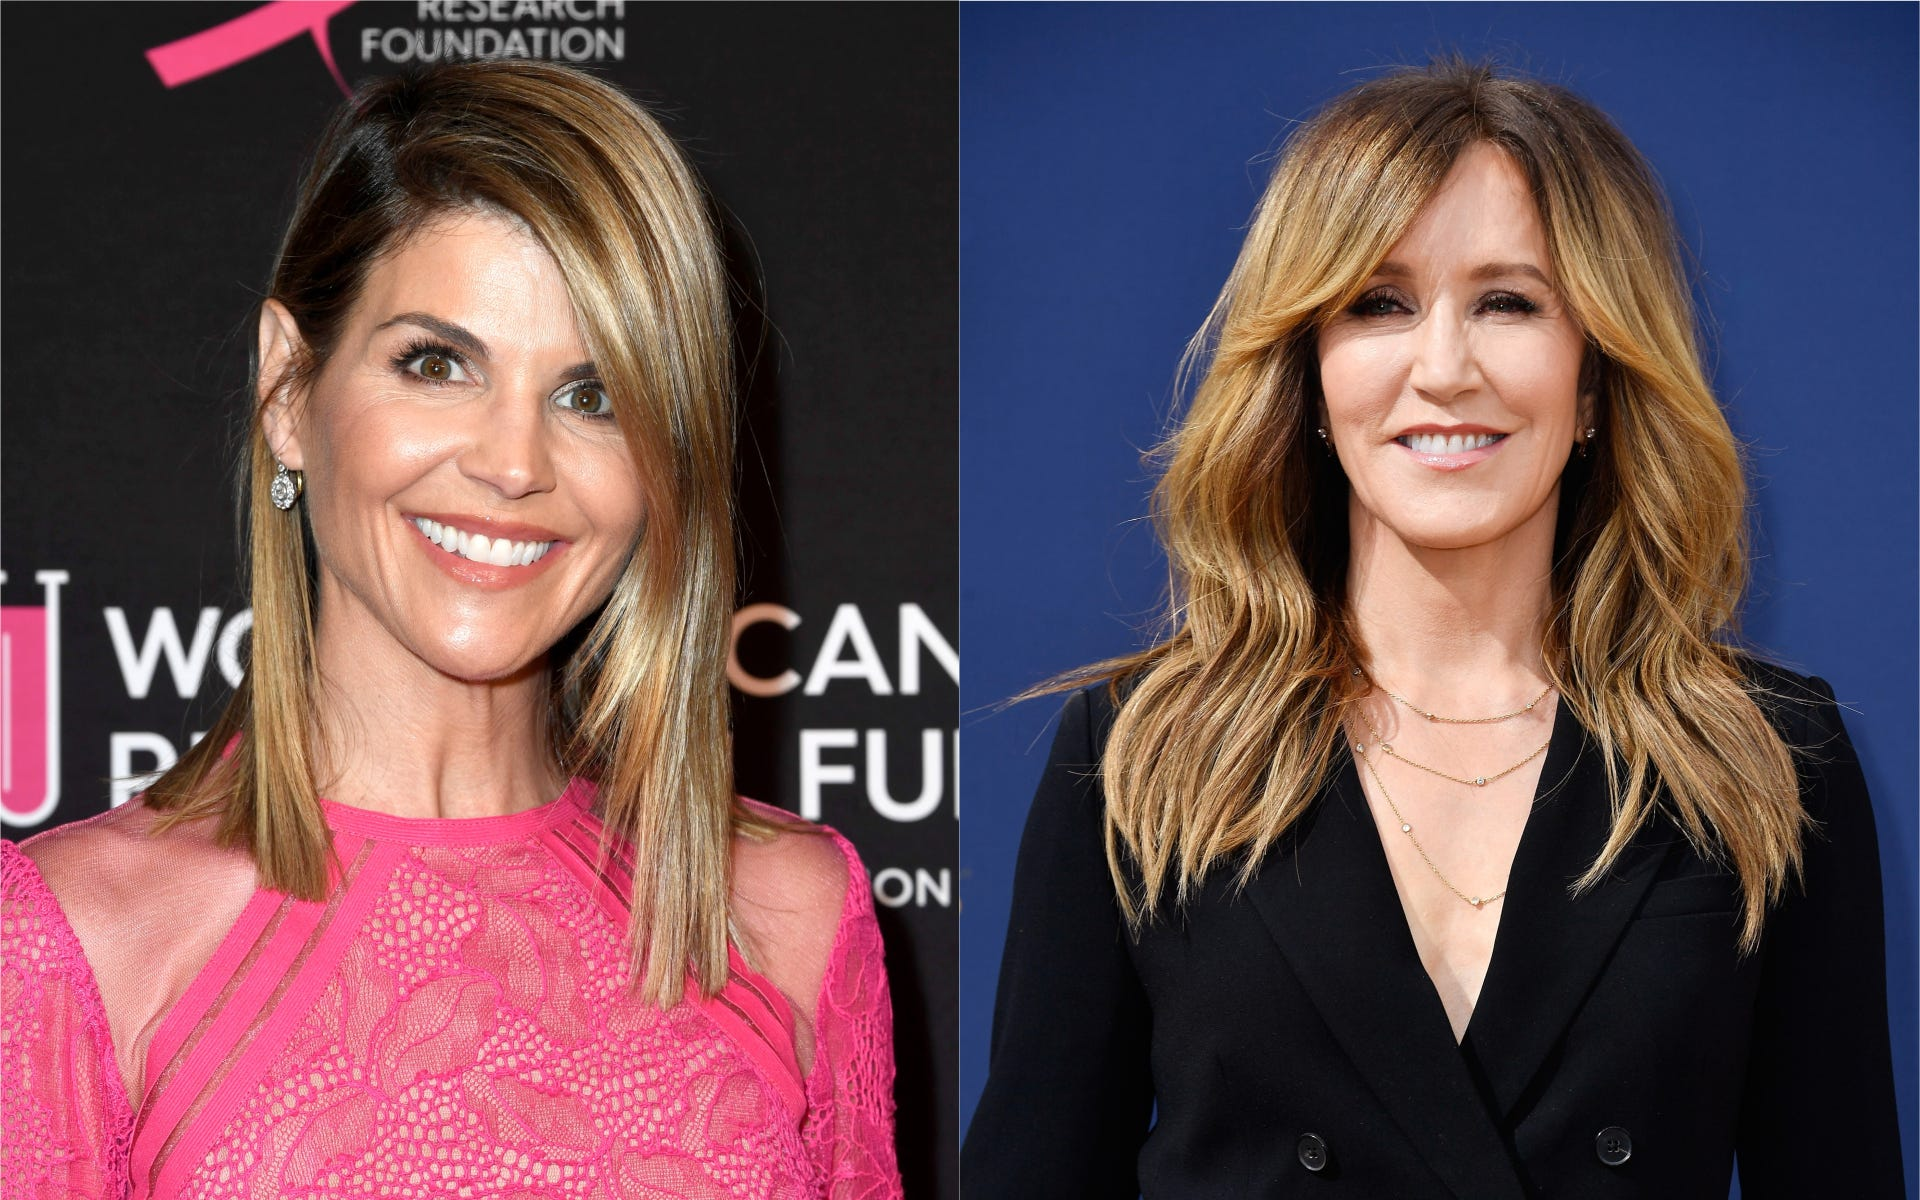 Lori Loughlin,Felicity Huffman sued for $500 billion(!) over college bribery scandal